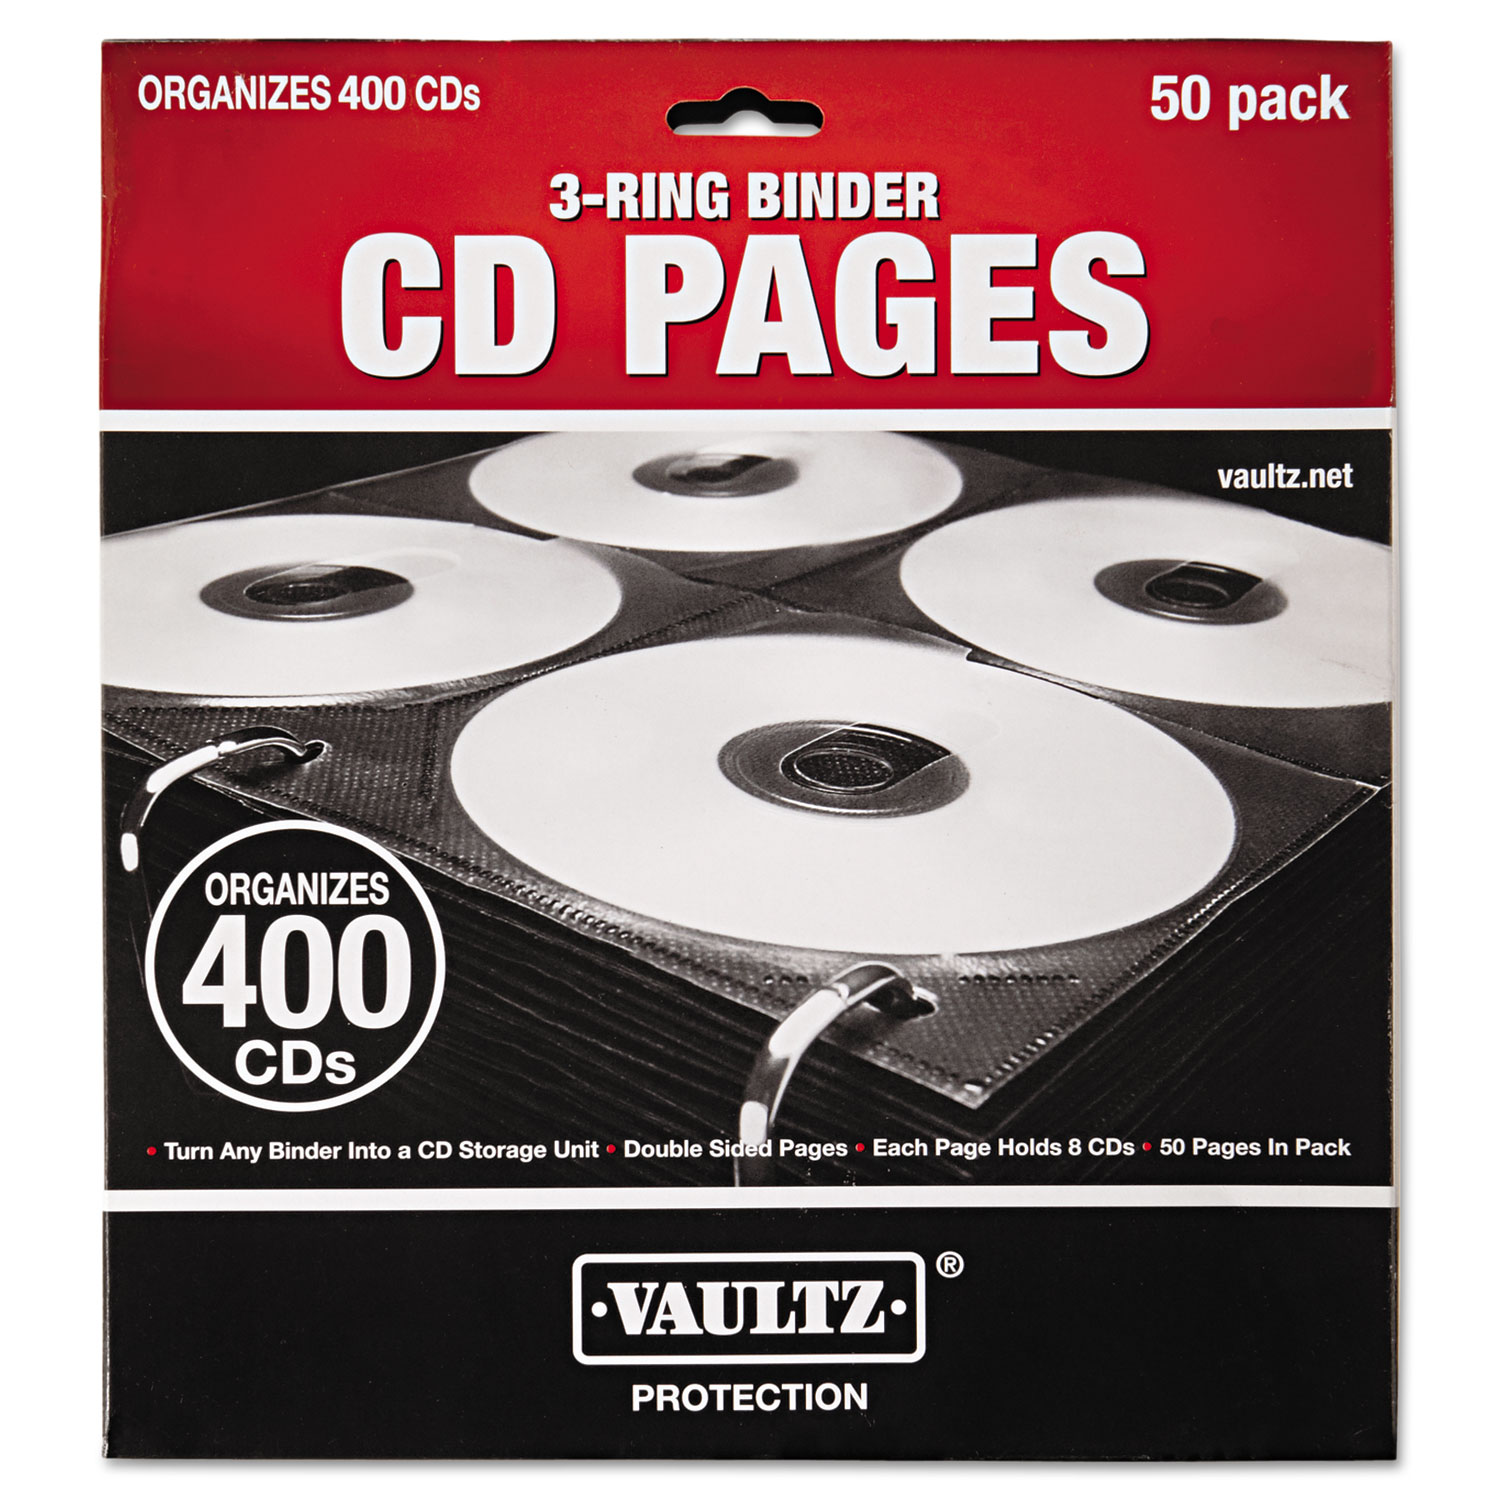 IDEVZ01415 Vaultz Two-Sided CD Refill Pages For Three-Ring